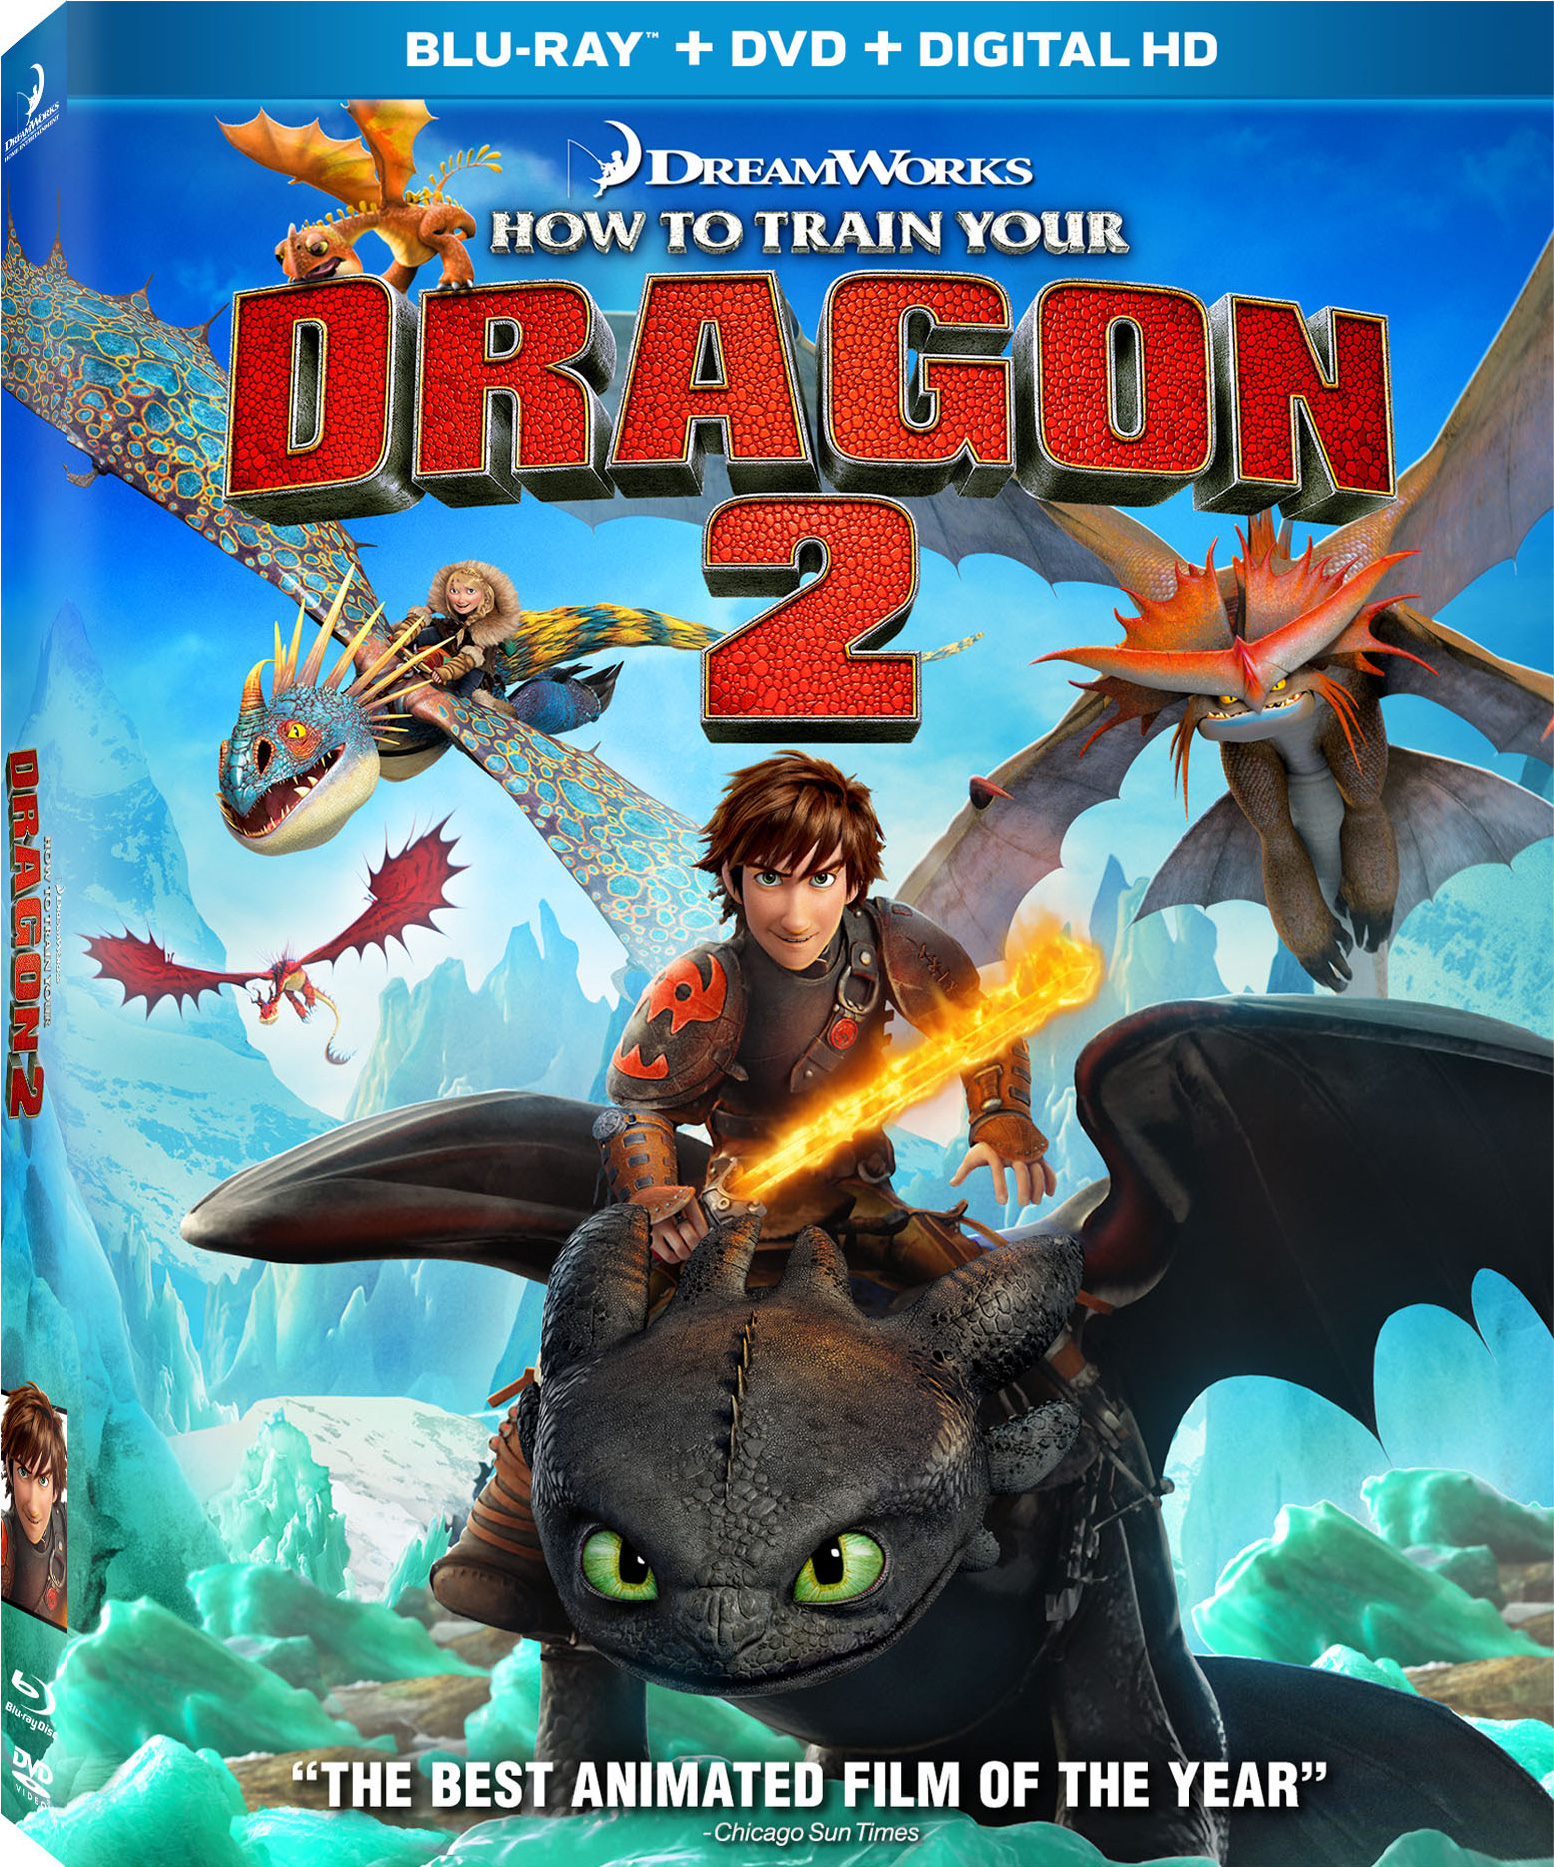 How to Train Your Dragon 2 Digital Release Date in October ...